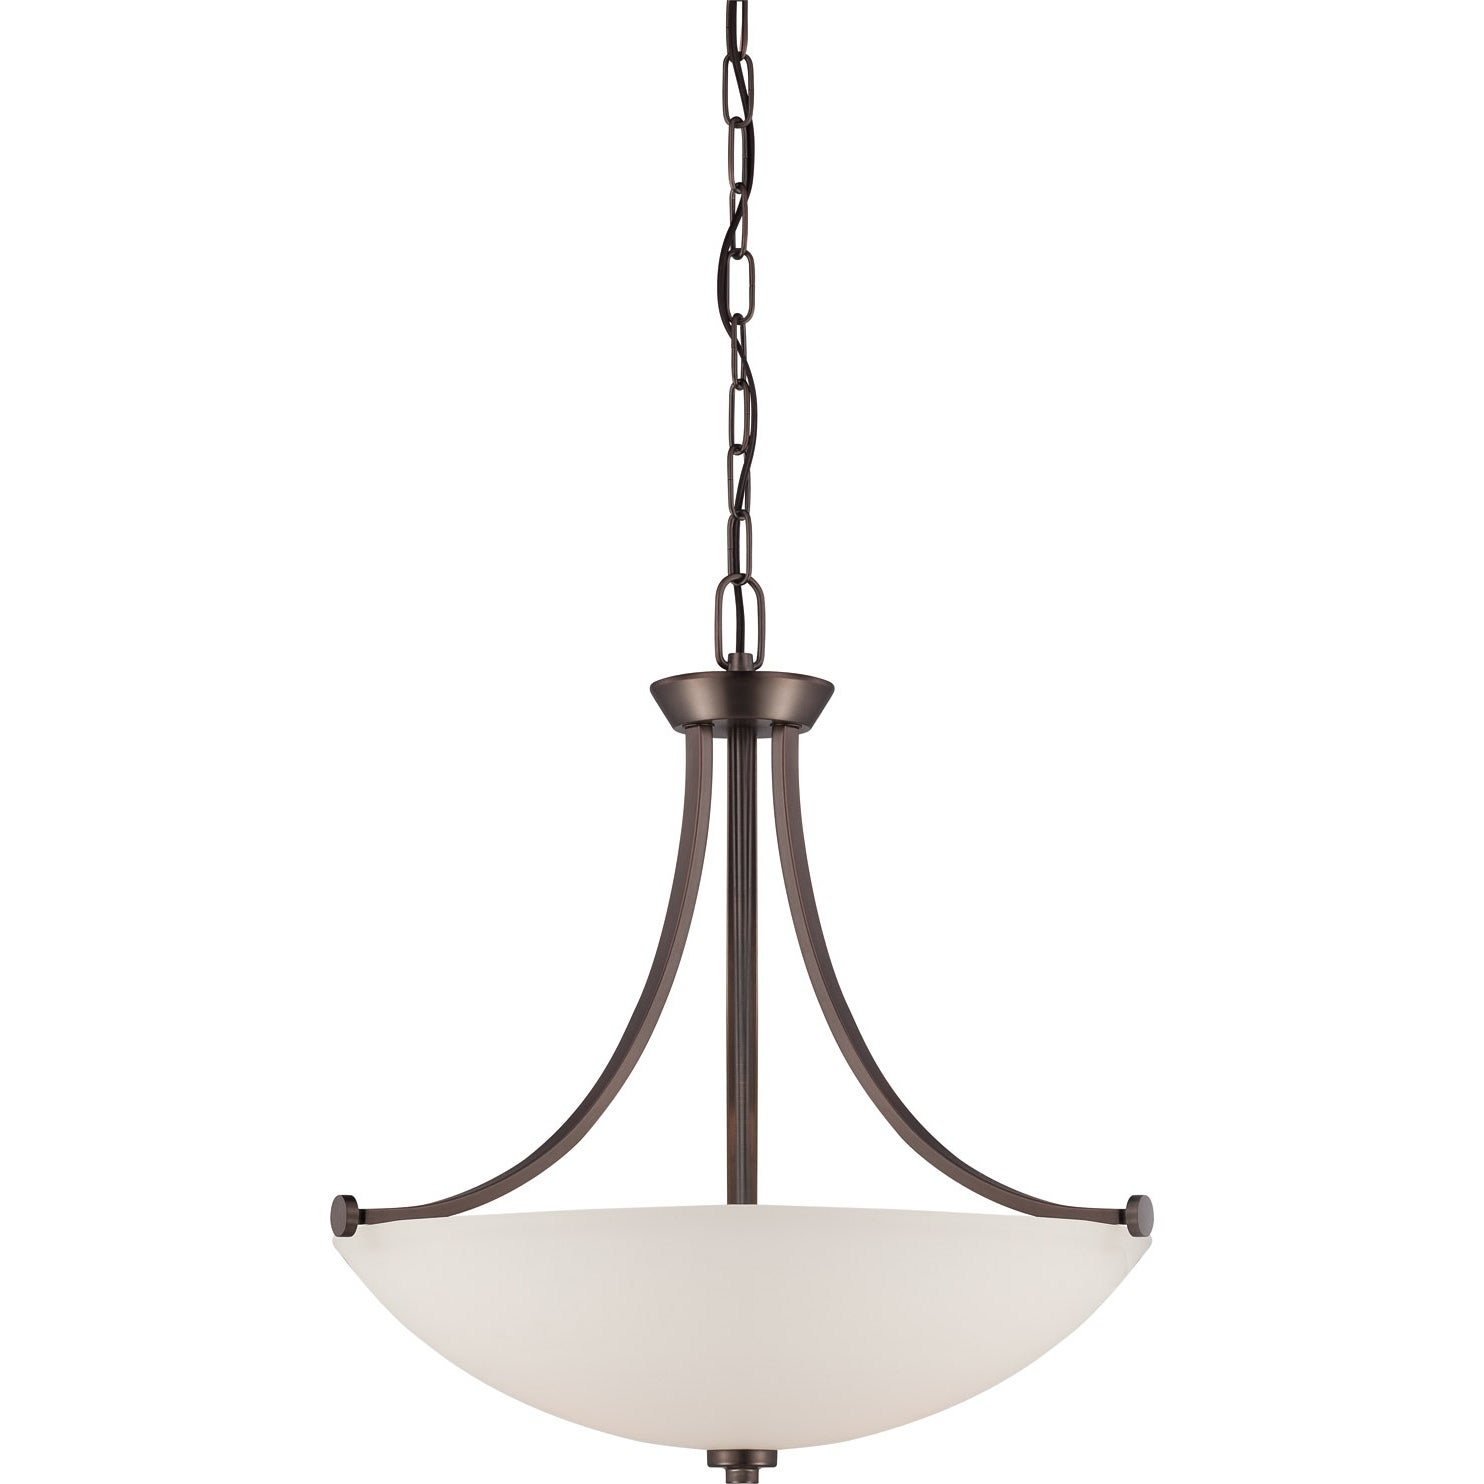 Nuvo Bentley 3-light Hazel Bronze Pendant